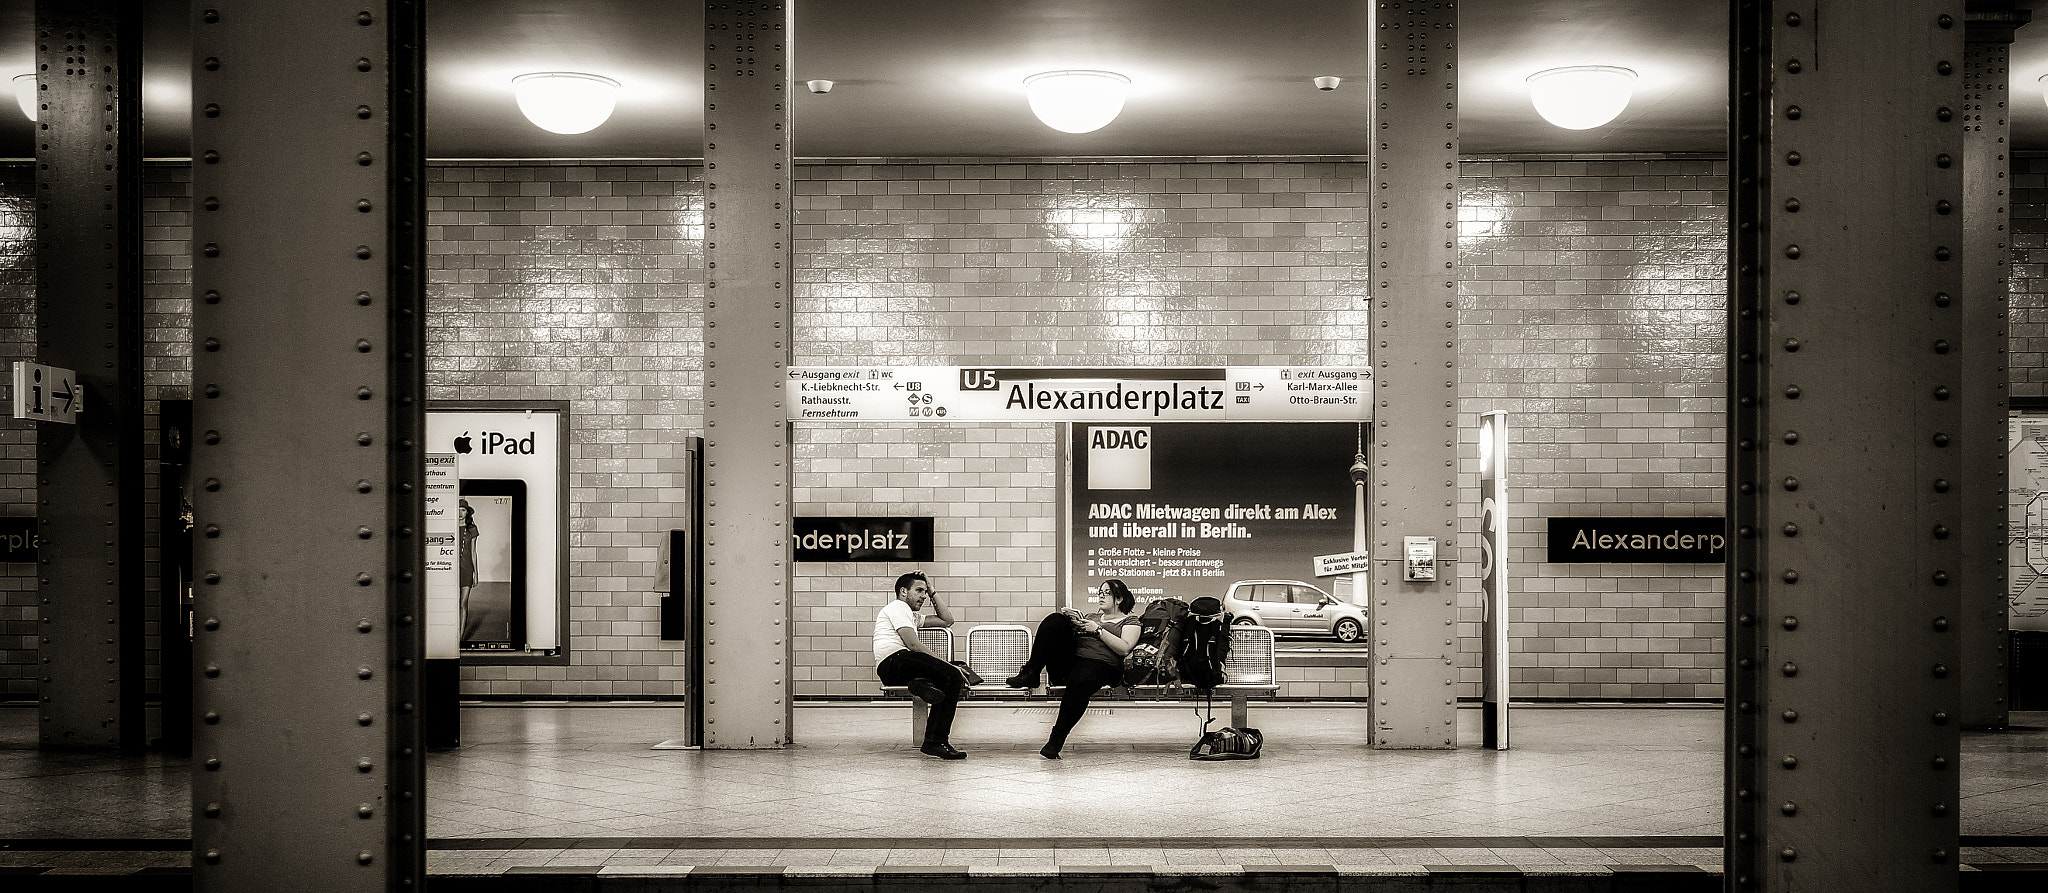 Photograph Trainspotting by Andreas Koesler on 500px